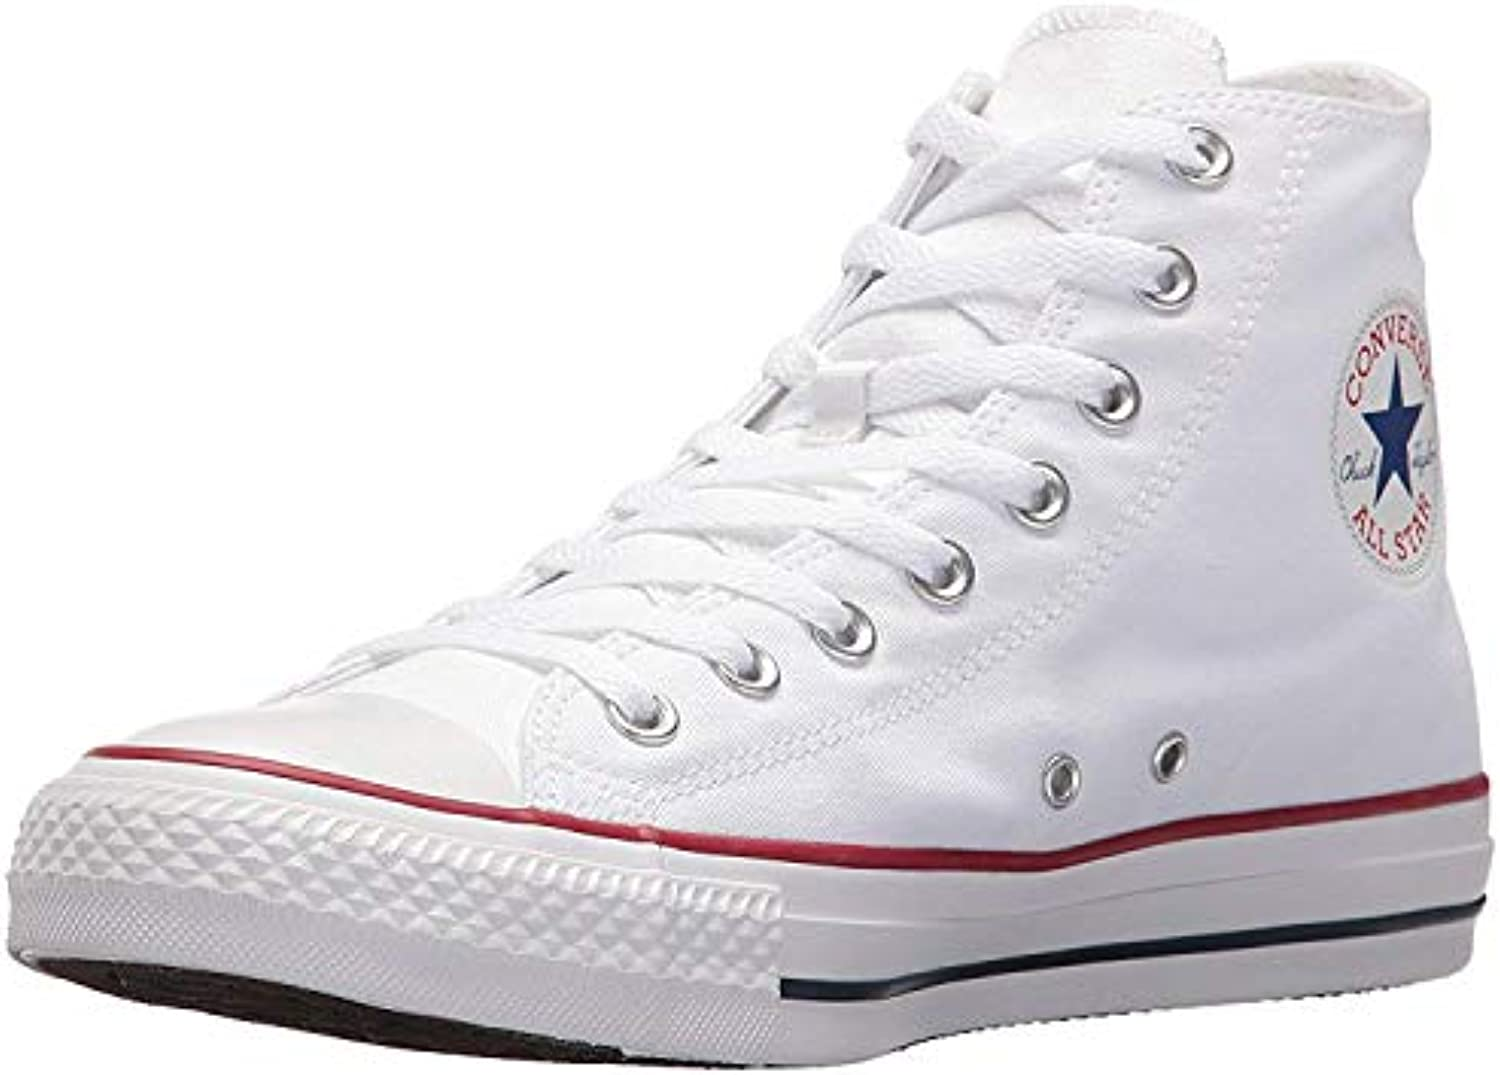 Converse As Hi Can Optic. Optic. Optic. Wht, Scarpe Unisex Bianco Dimensione  6 M E | Fai pieno uso dei materiali